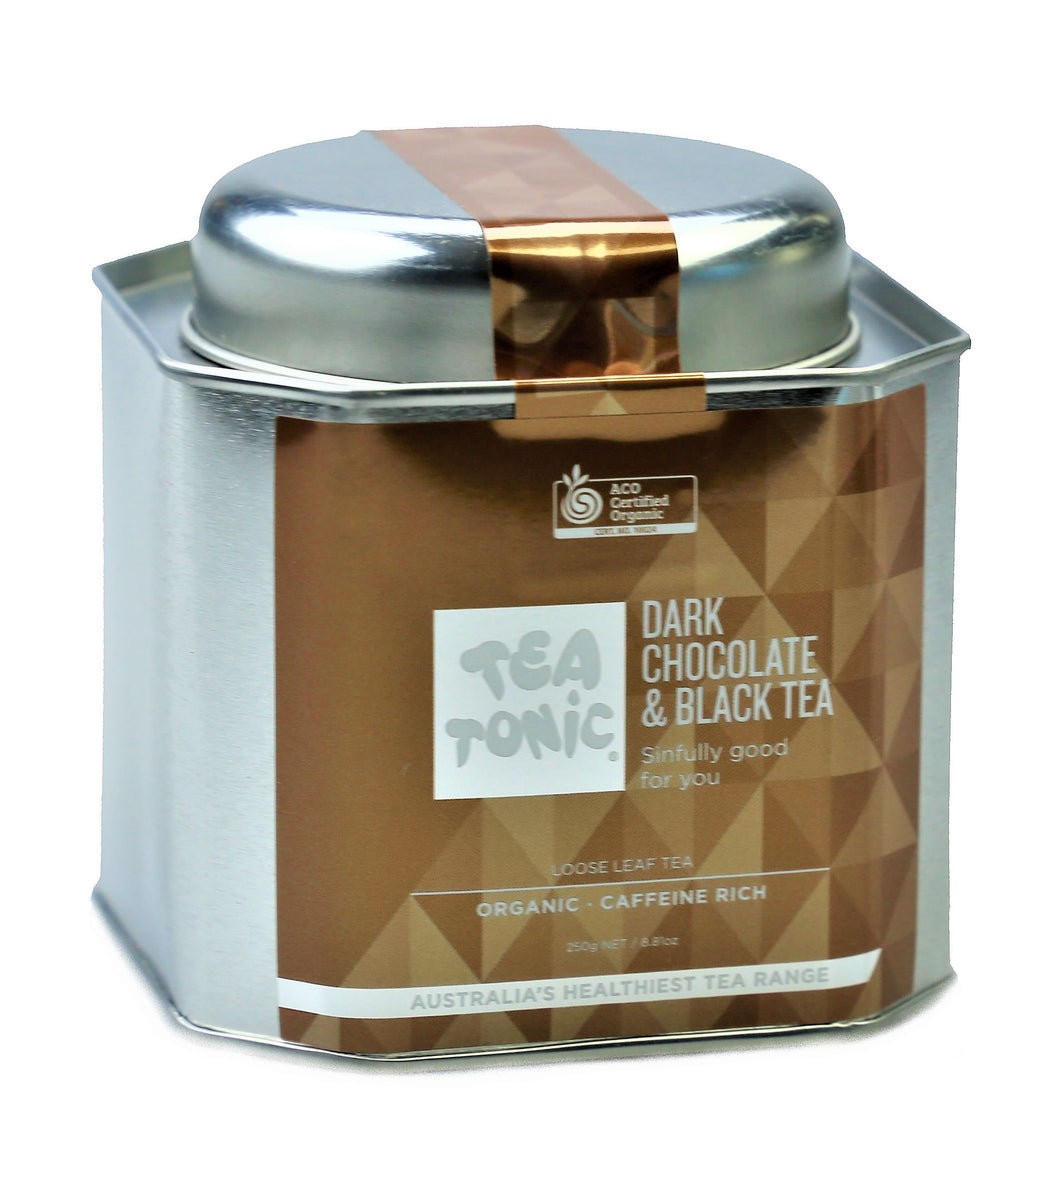 Dark Chocolate & Black Tea Loose Leaf Caddy Tin